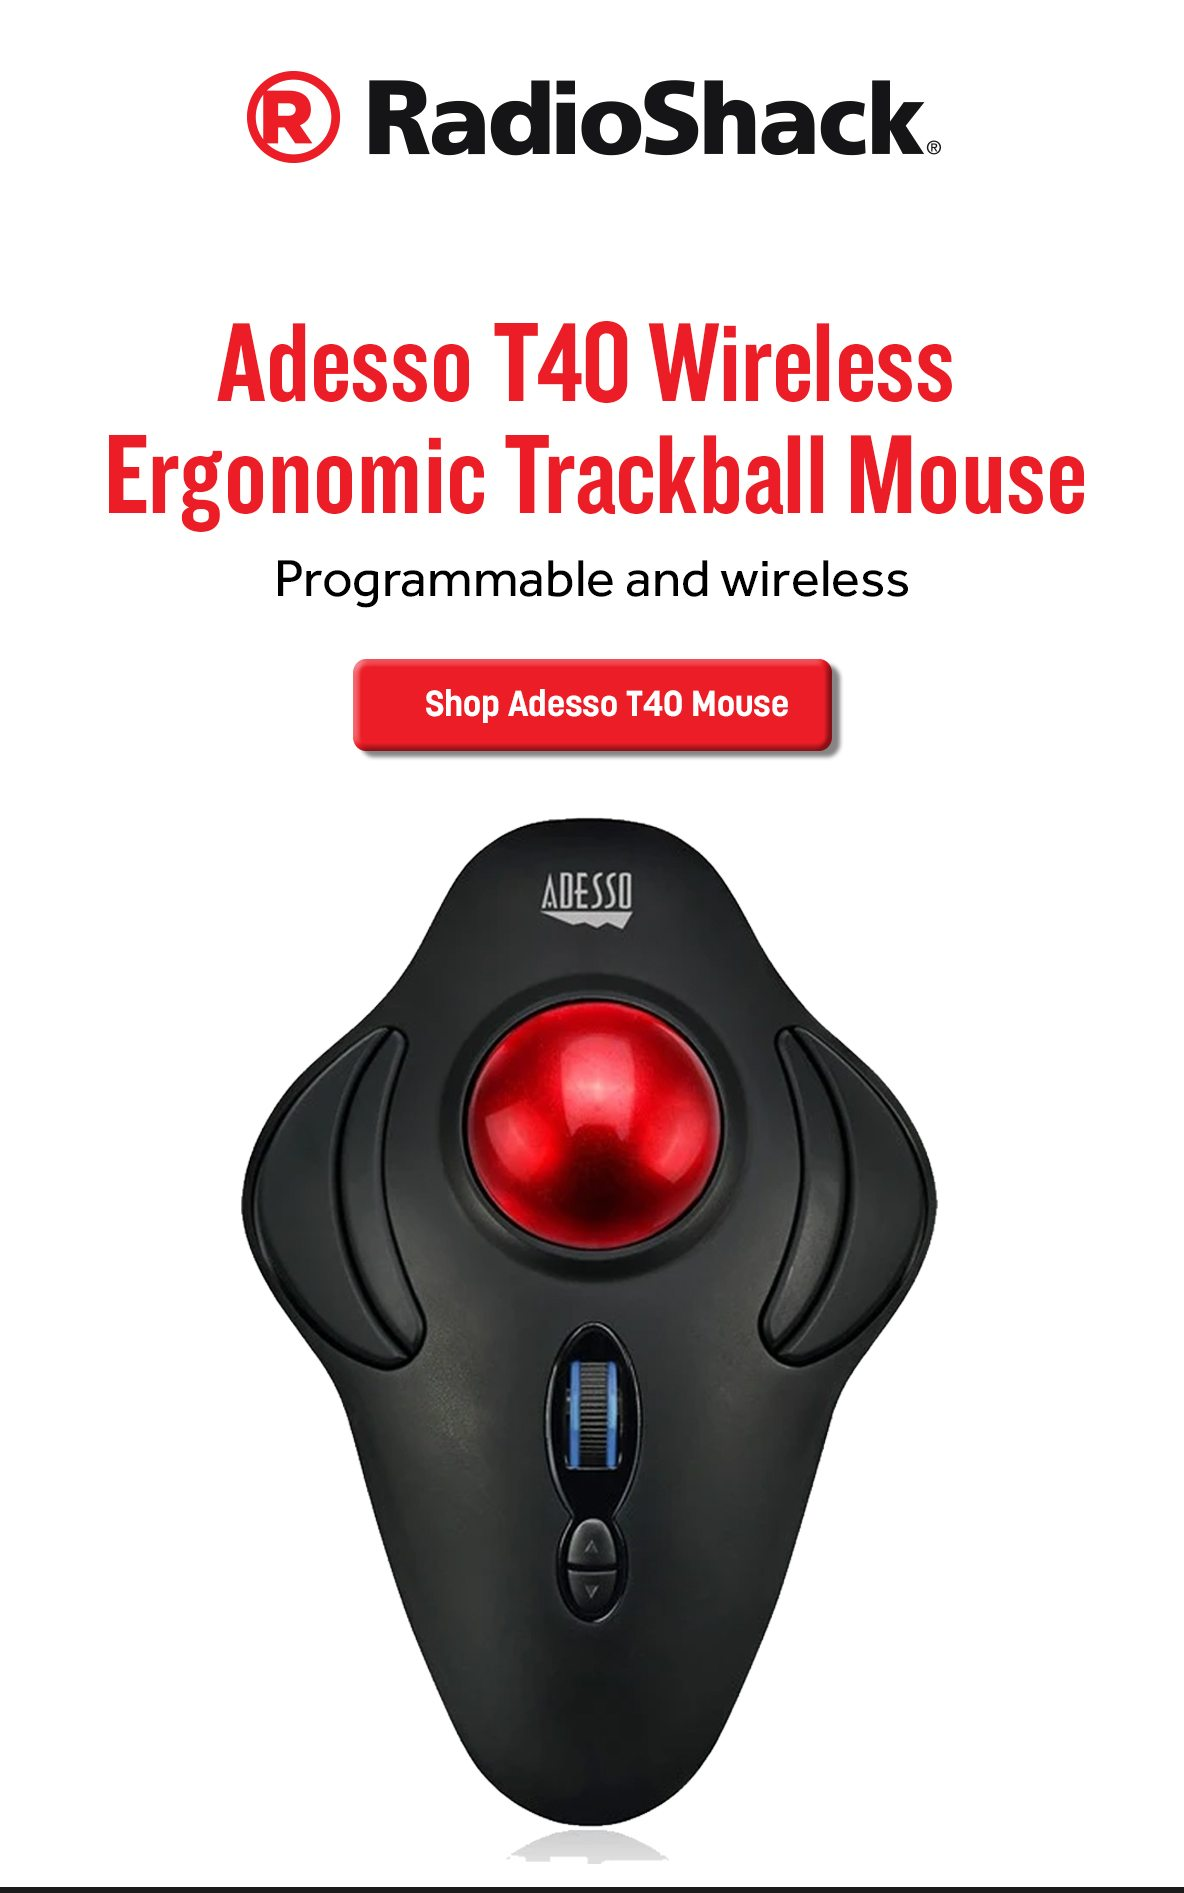 Adesso iMouse T40 Wireless Programmable Ergonomic Trackball Mouse